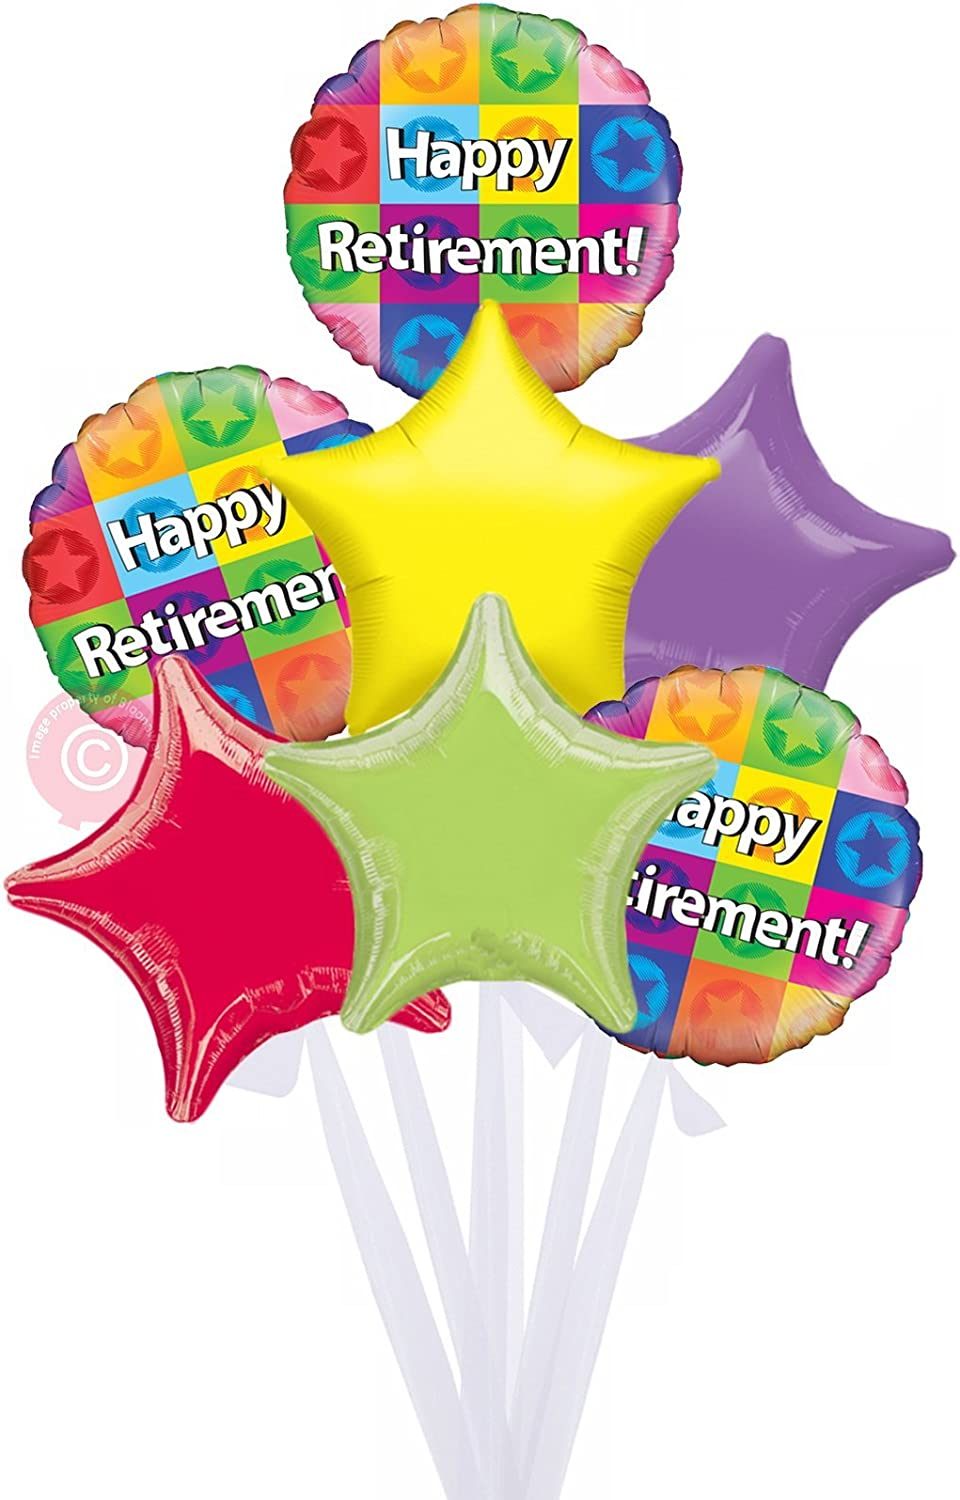 Happy Retirement  Inflated Retirement Goodbye Helium Balloon Delivered in a Box  Bigger Bouquet  7 Balloons  Bloonaway